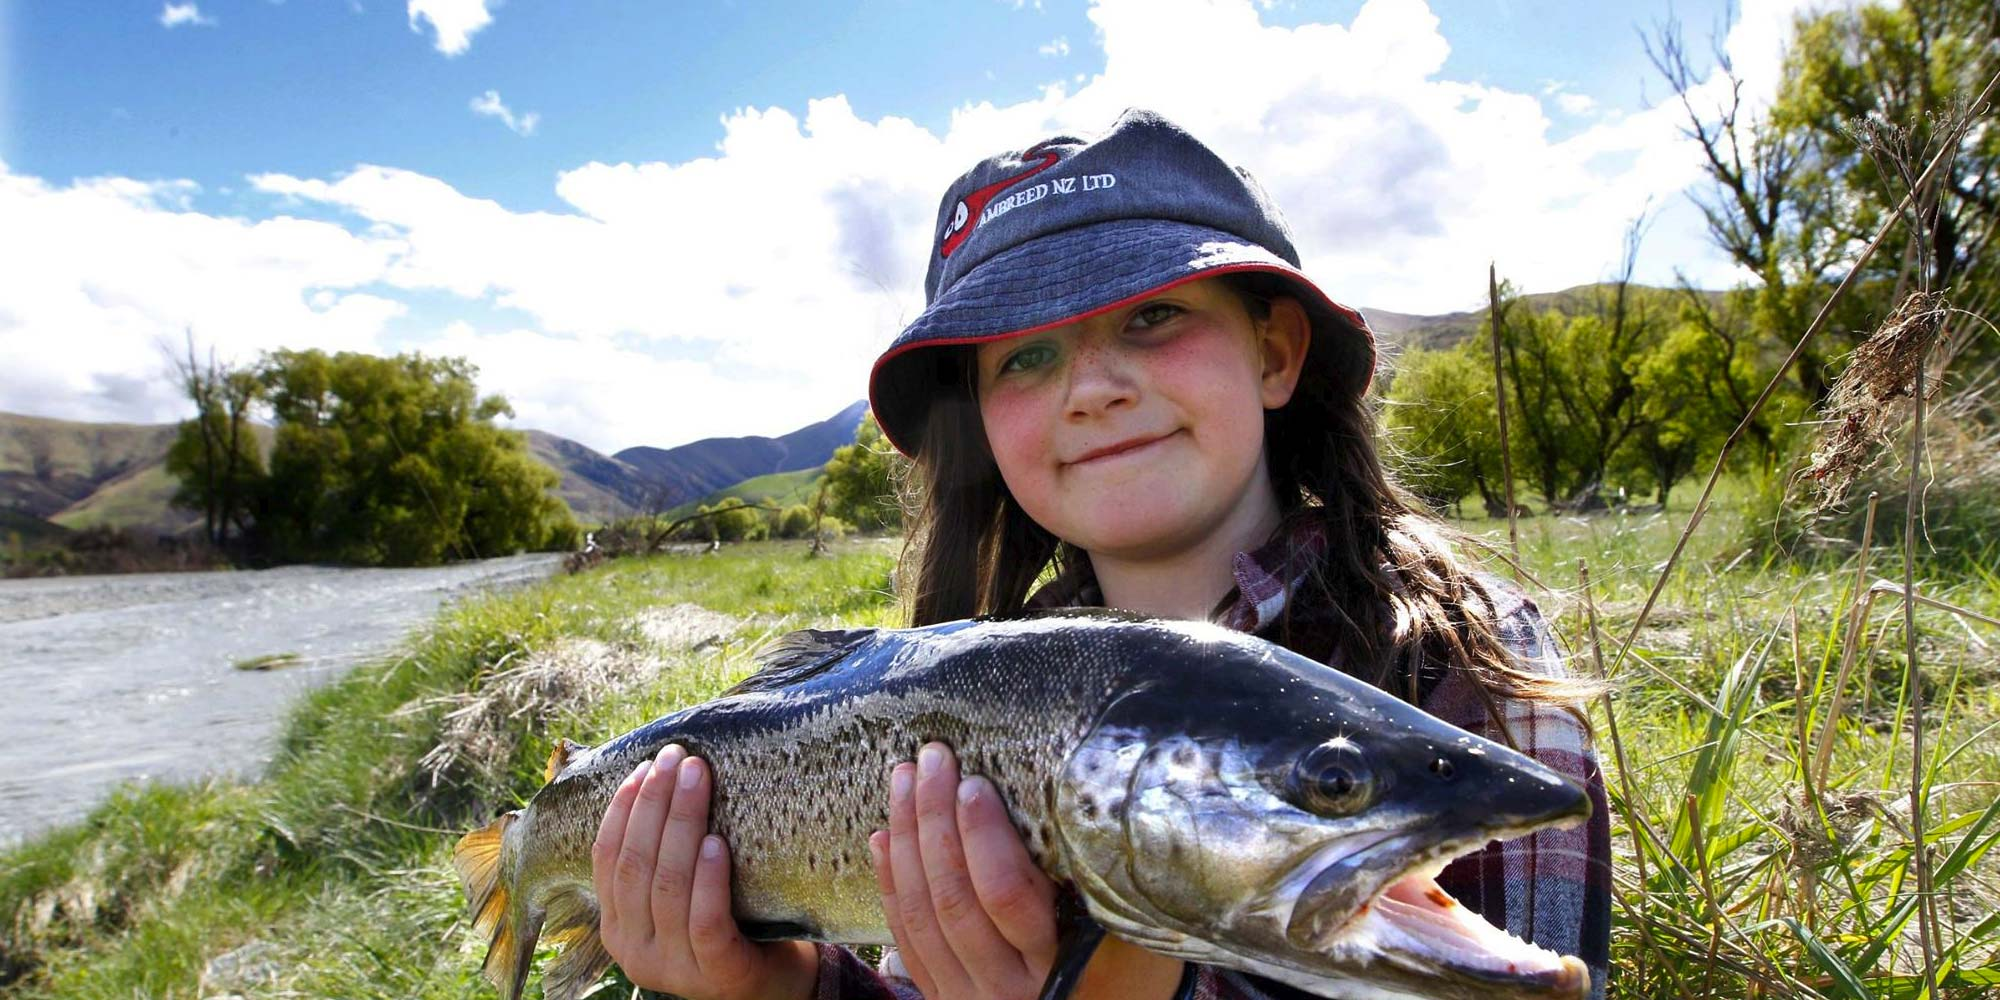 Freshwater fish limits - In This Section Learn How To Get Started With Freshwater Fishing In New Zealand This Section Contains Information On